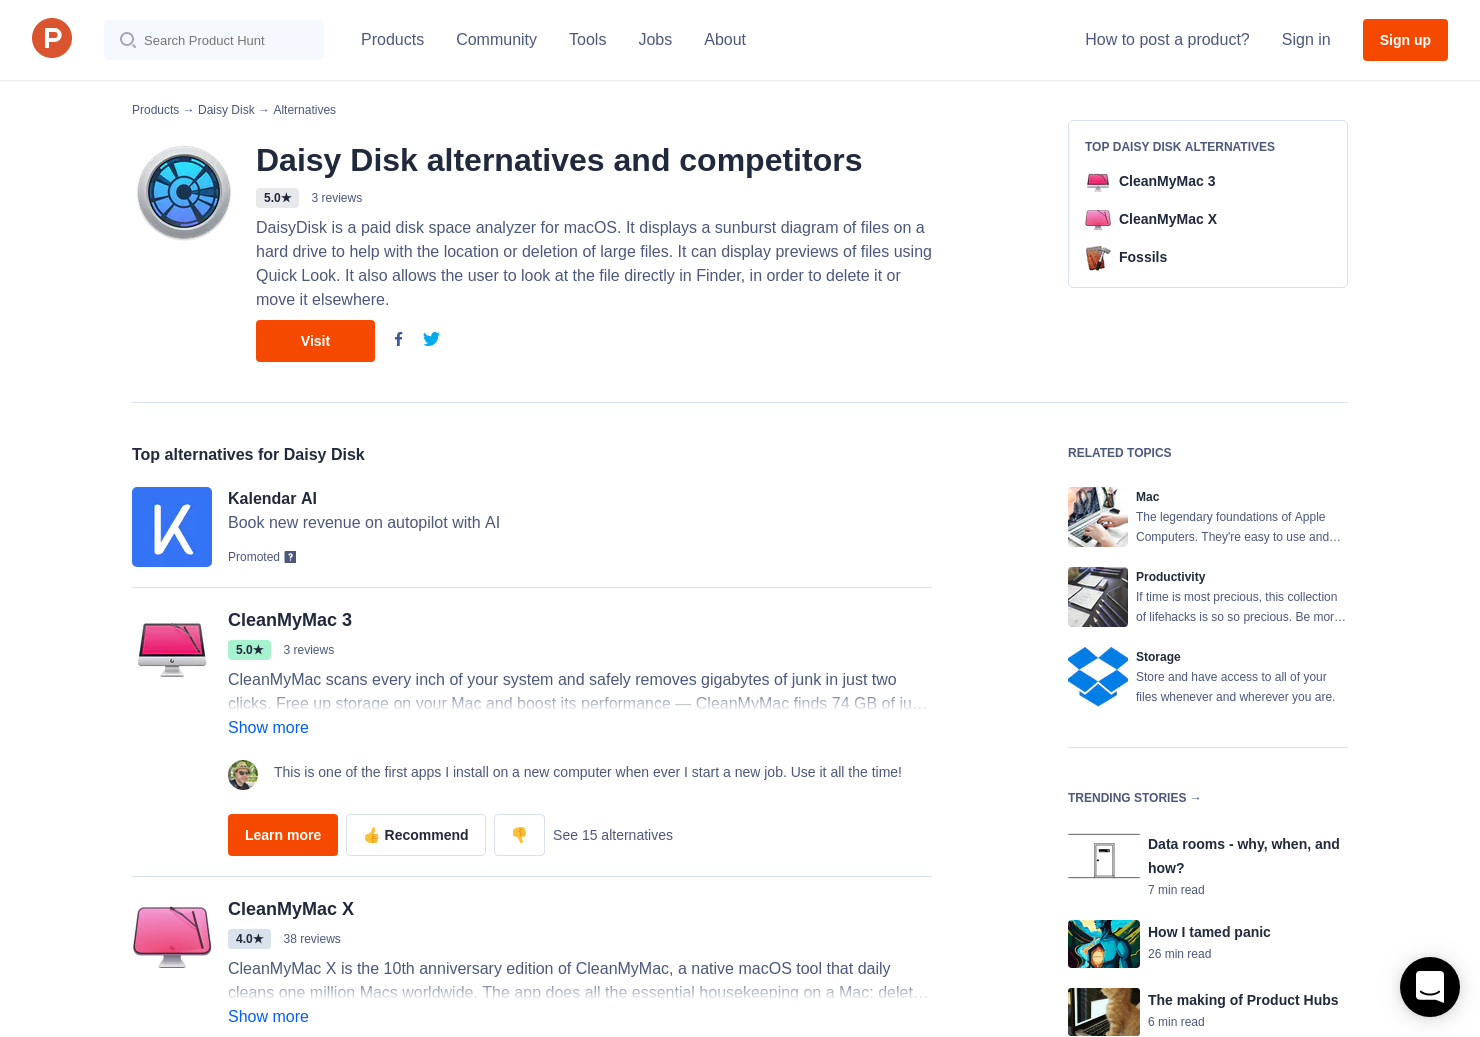 7 Alternatives to Daisy Disk 4 0 for Mac | Product Hunt